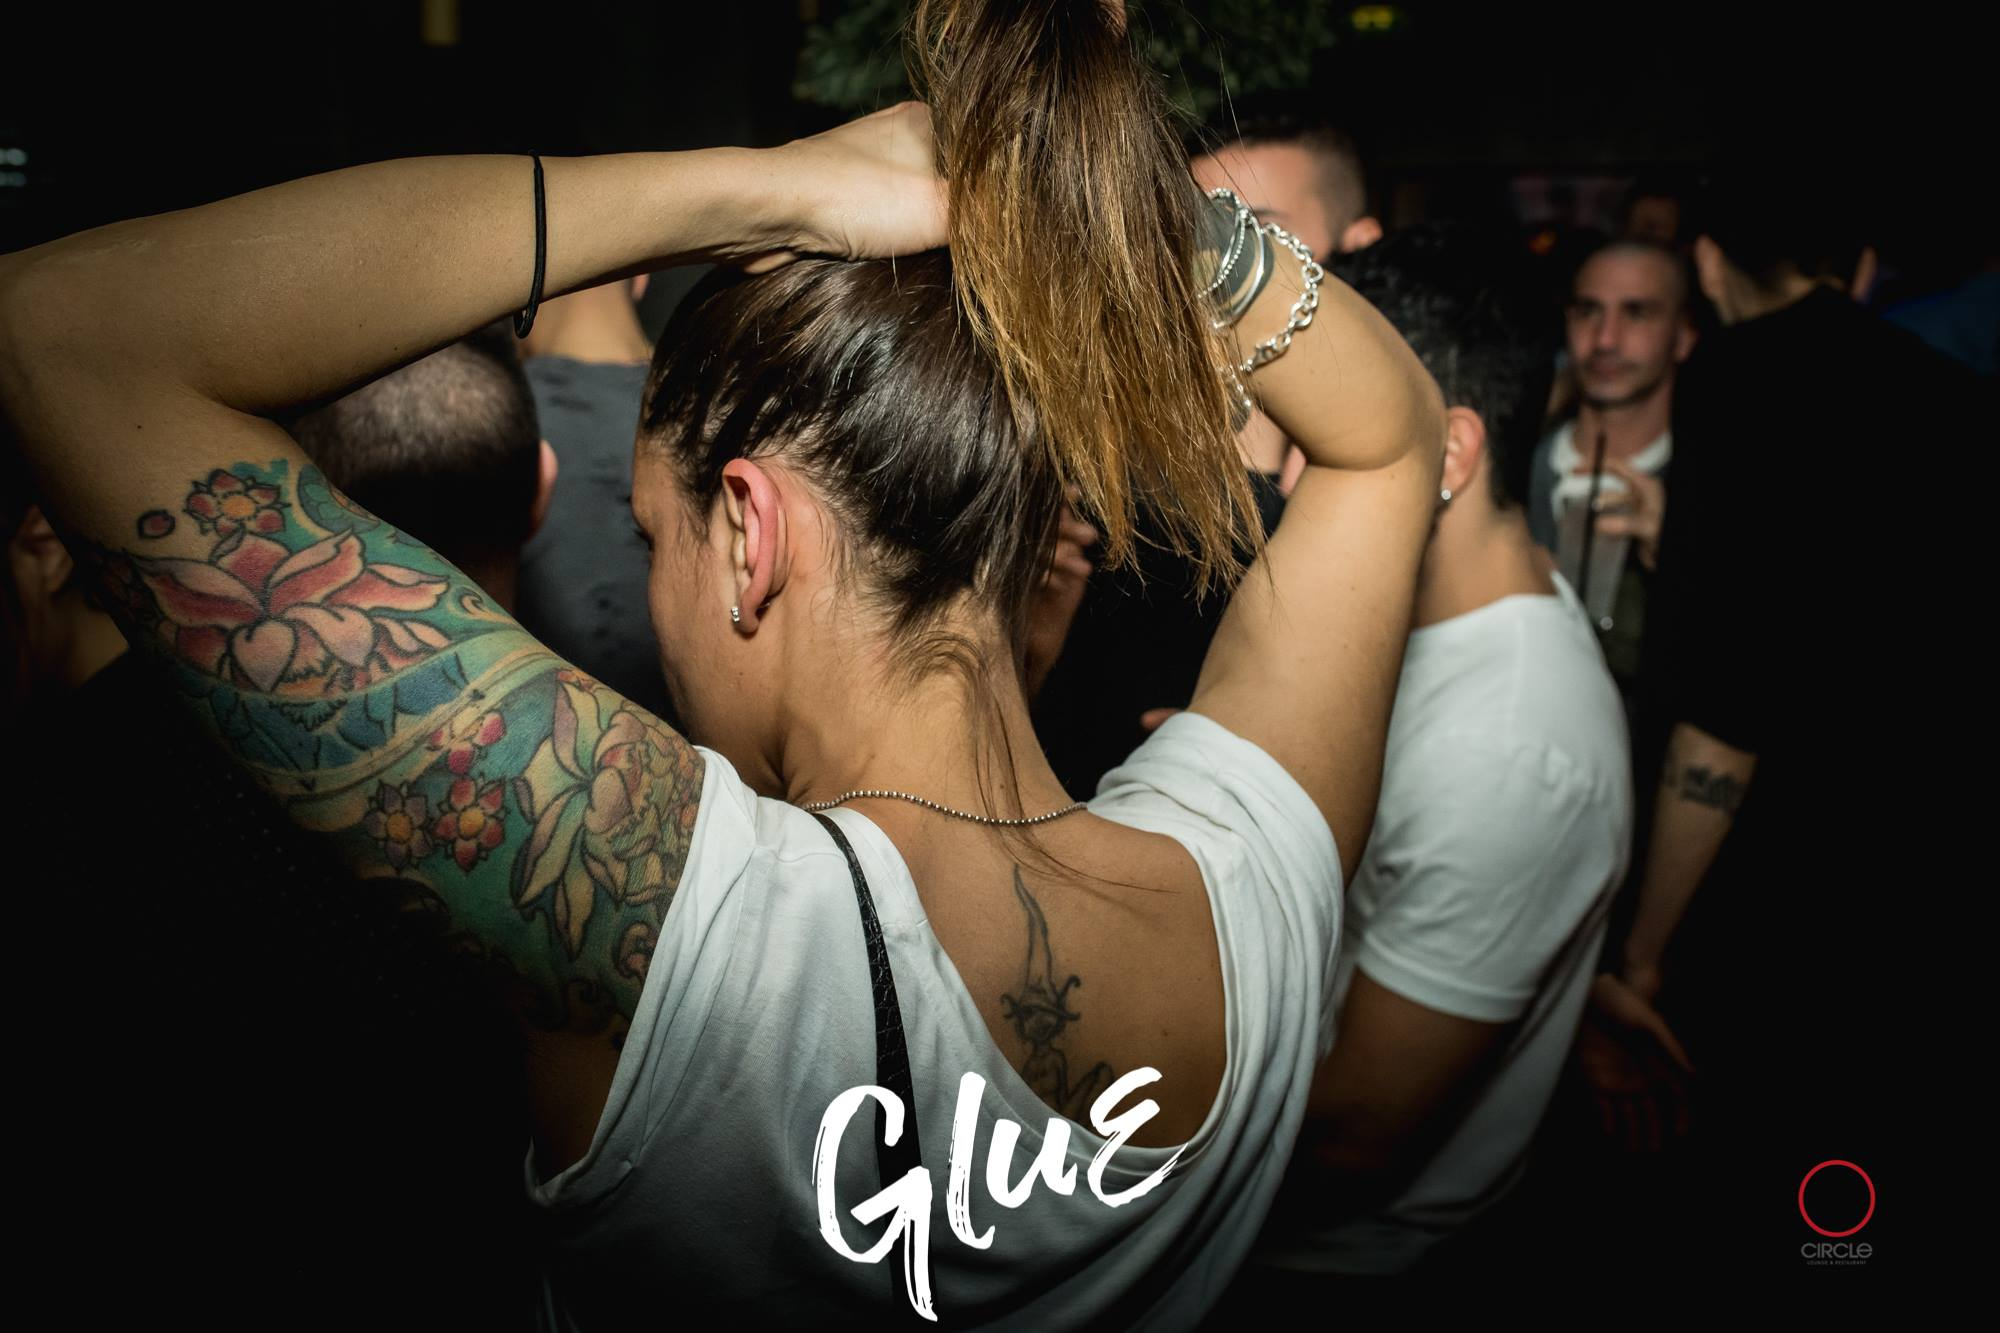 GLUE meets DEVICE JACKIN RECORDS | YOUparti circle milano house music free gratis friday venerdì